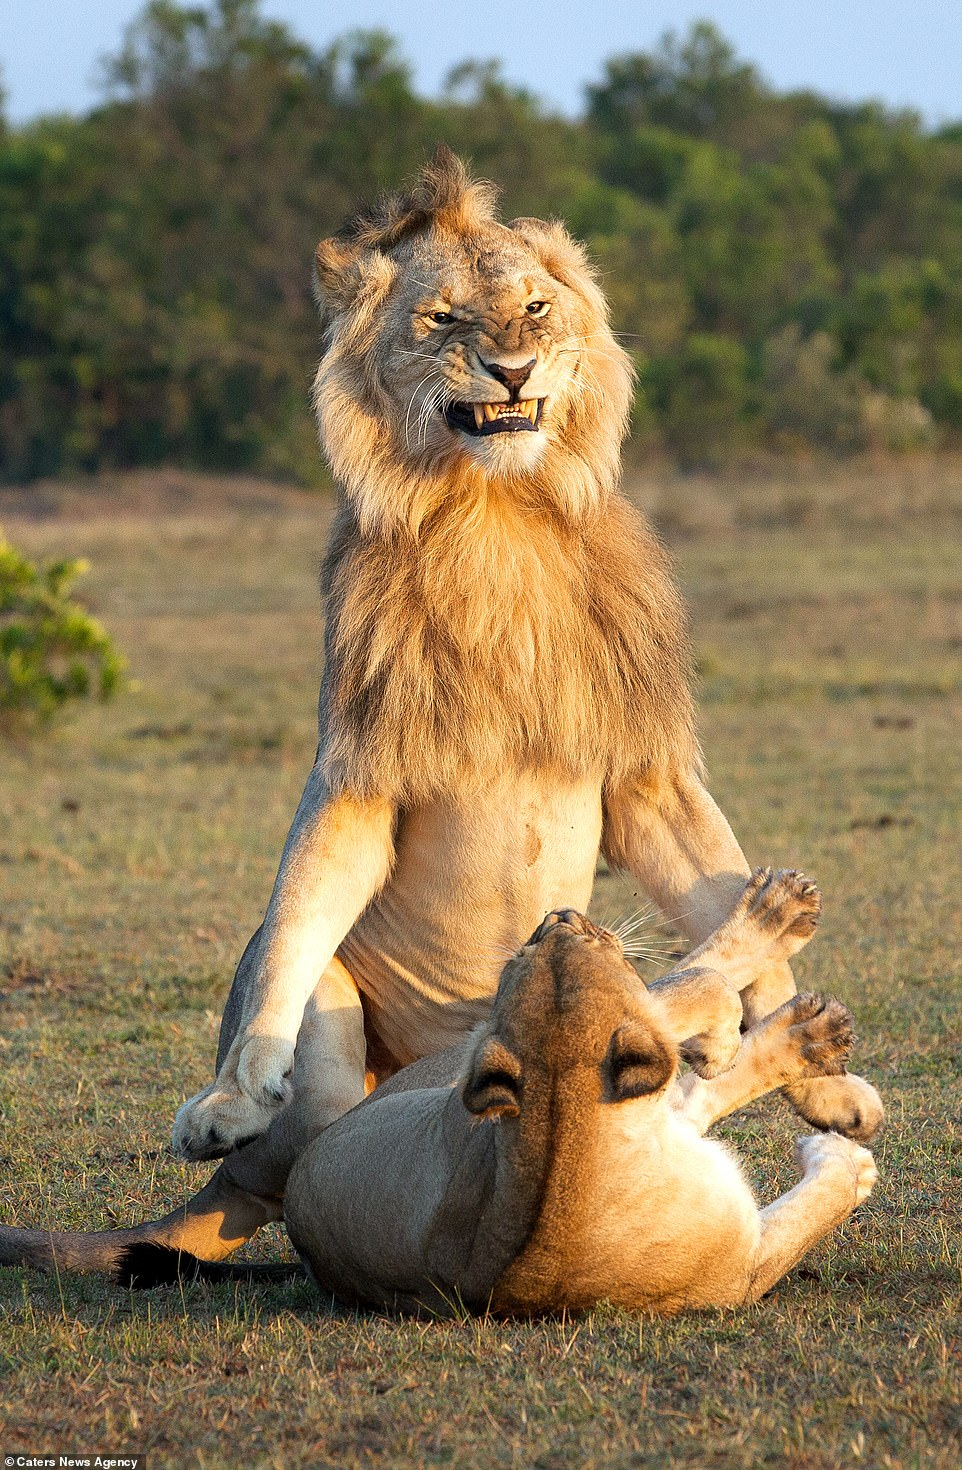 The lion's face is scrunched in anticipation or frustration as it flexes above the lioness who growls back at him from the ground; lions do not mate at a specific time of year and the females are polyestrous, meaning they can go into heat several times throughout the year